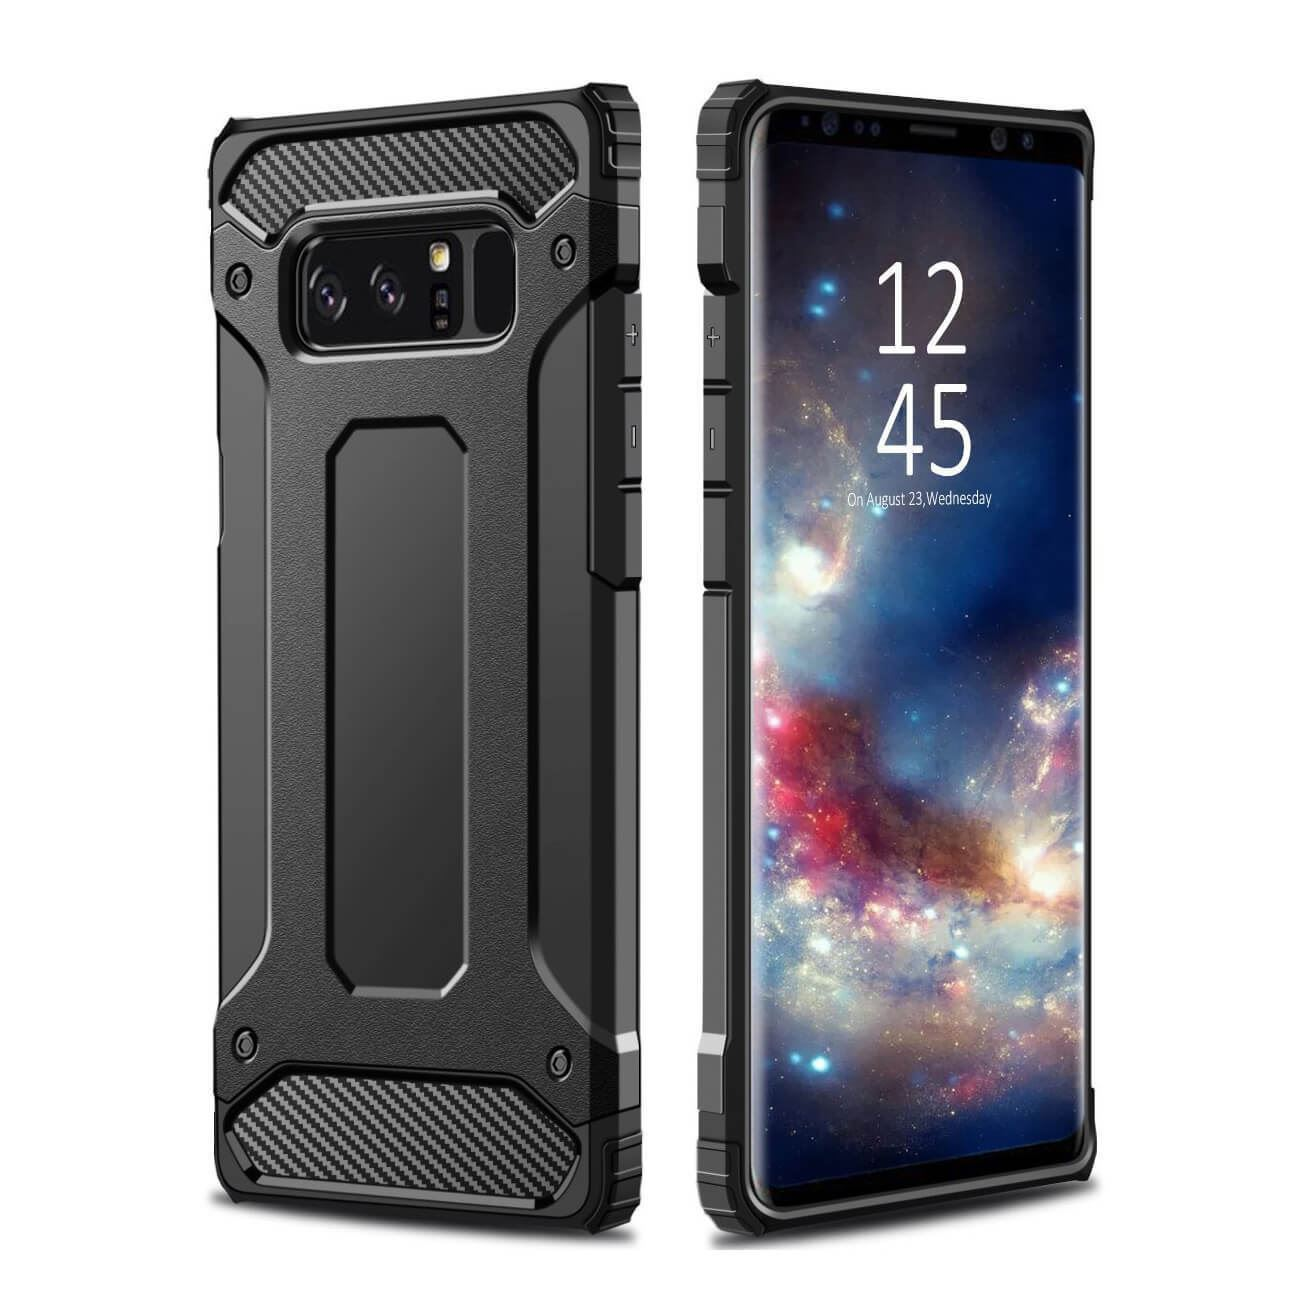 Hybrid-Armor-Shockproof-Rugged-Bumper-Case-For-Samsung-Galaxy-S7-Edge-S8-Note-S9 縮圖 20